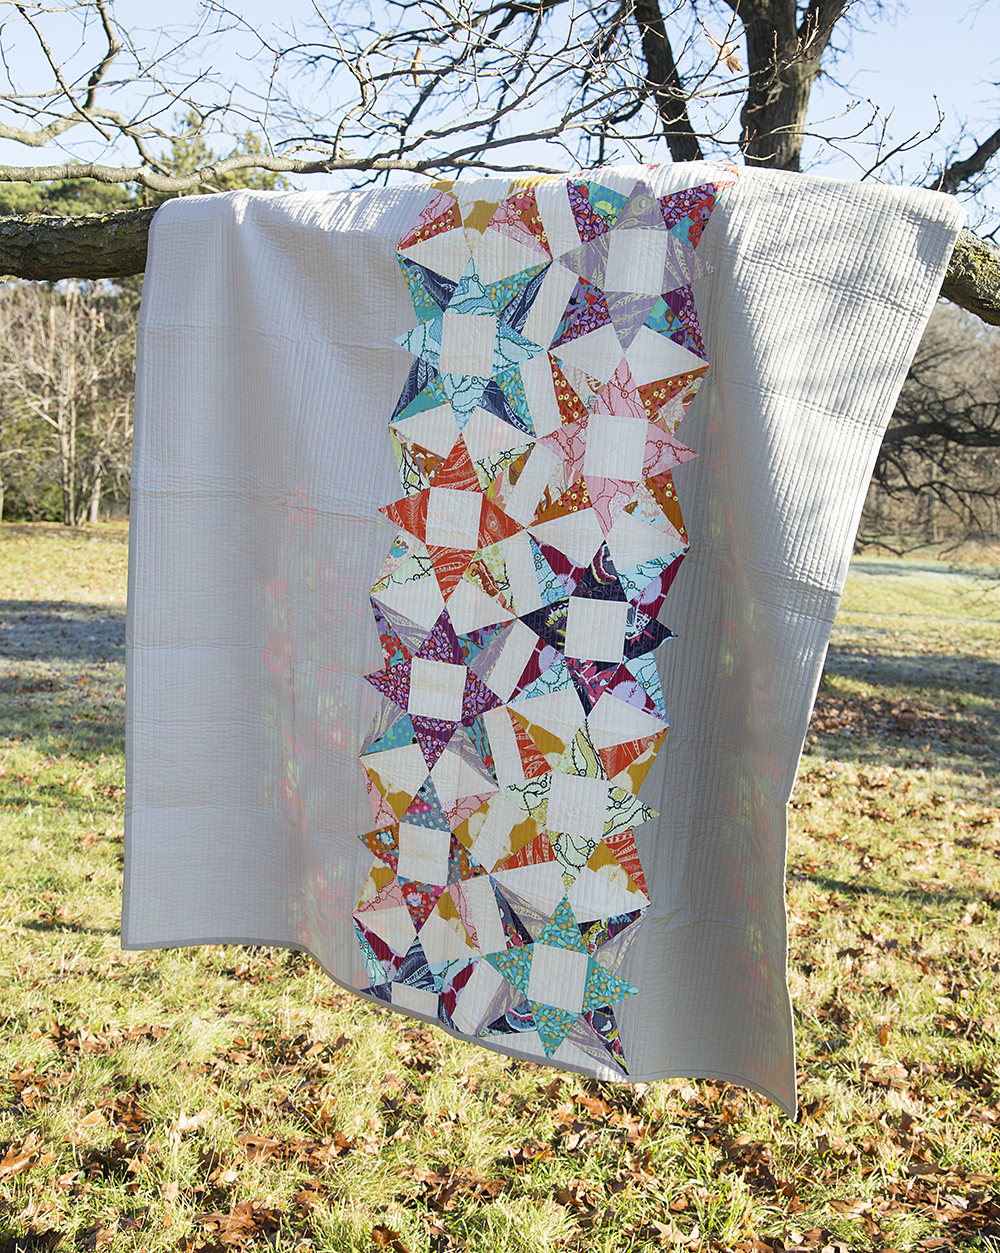 Star Bright Quilt ~ Pattern from book Vintage Quilt Revival